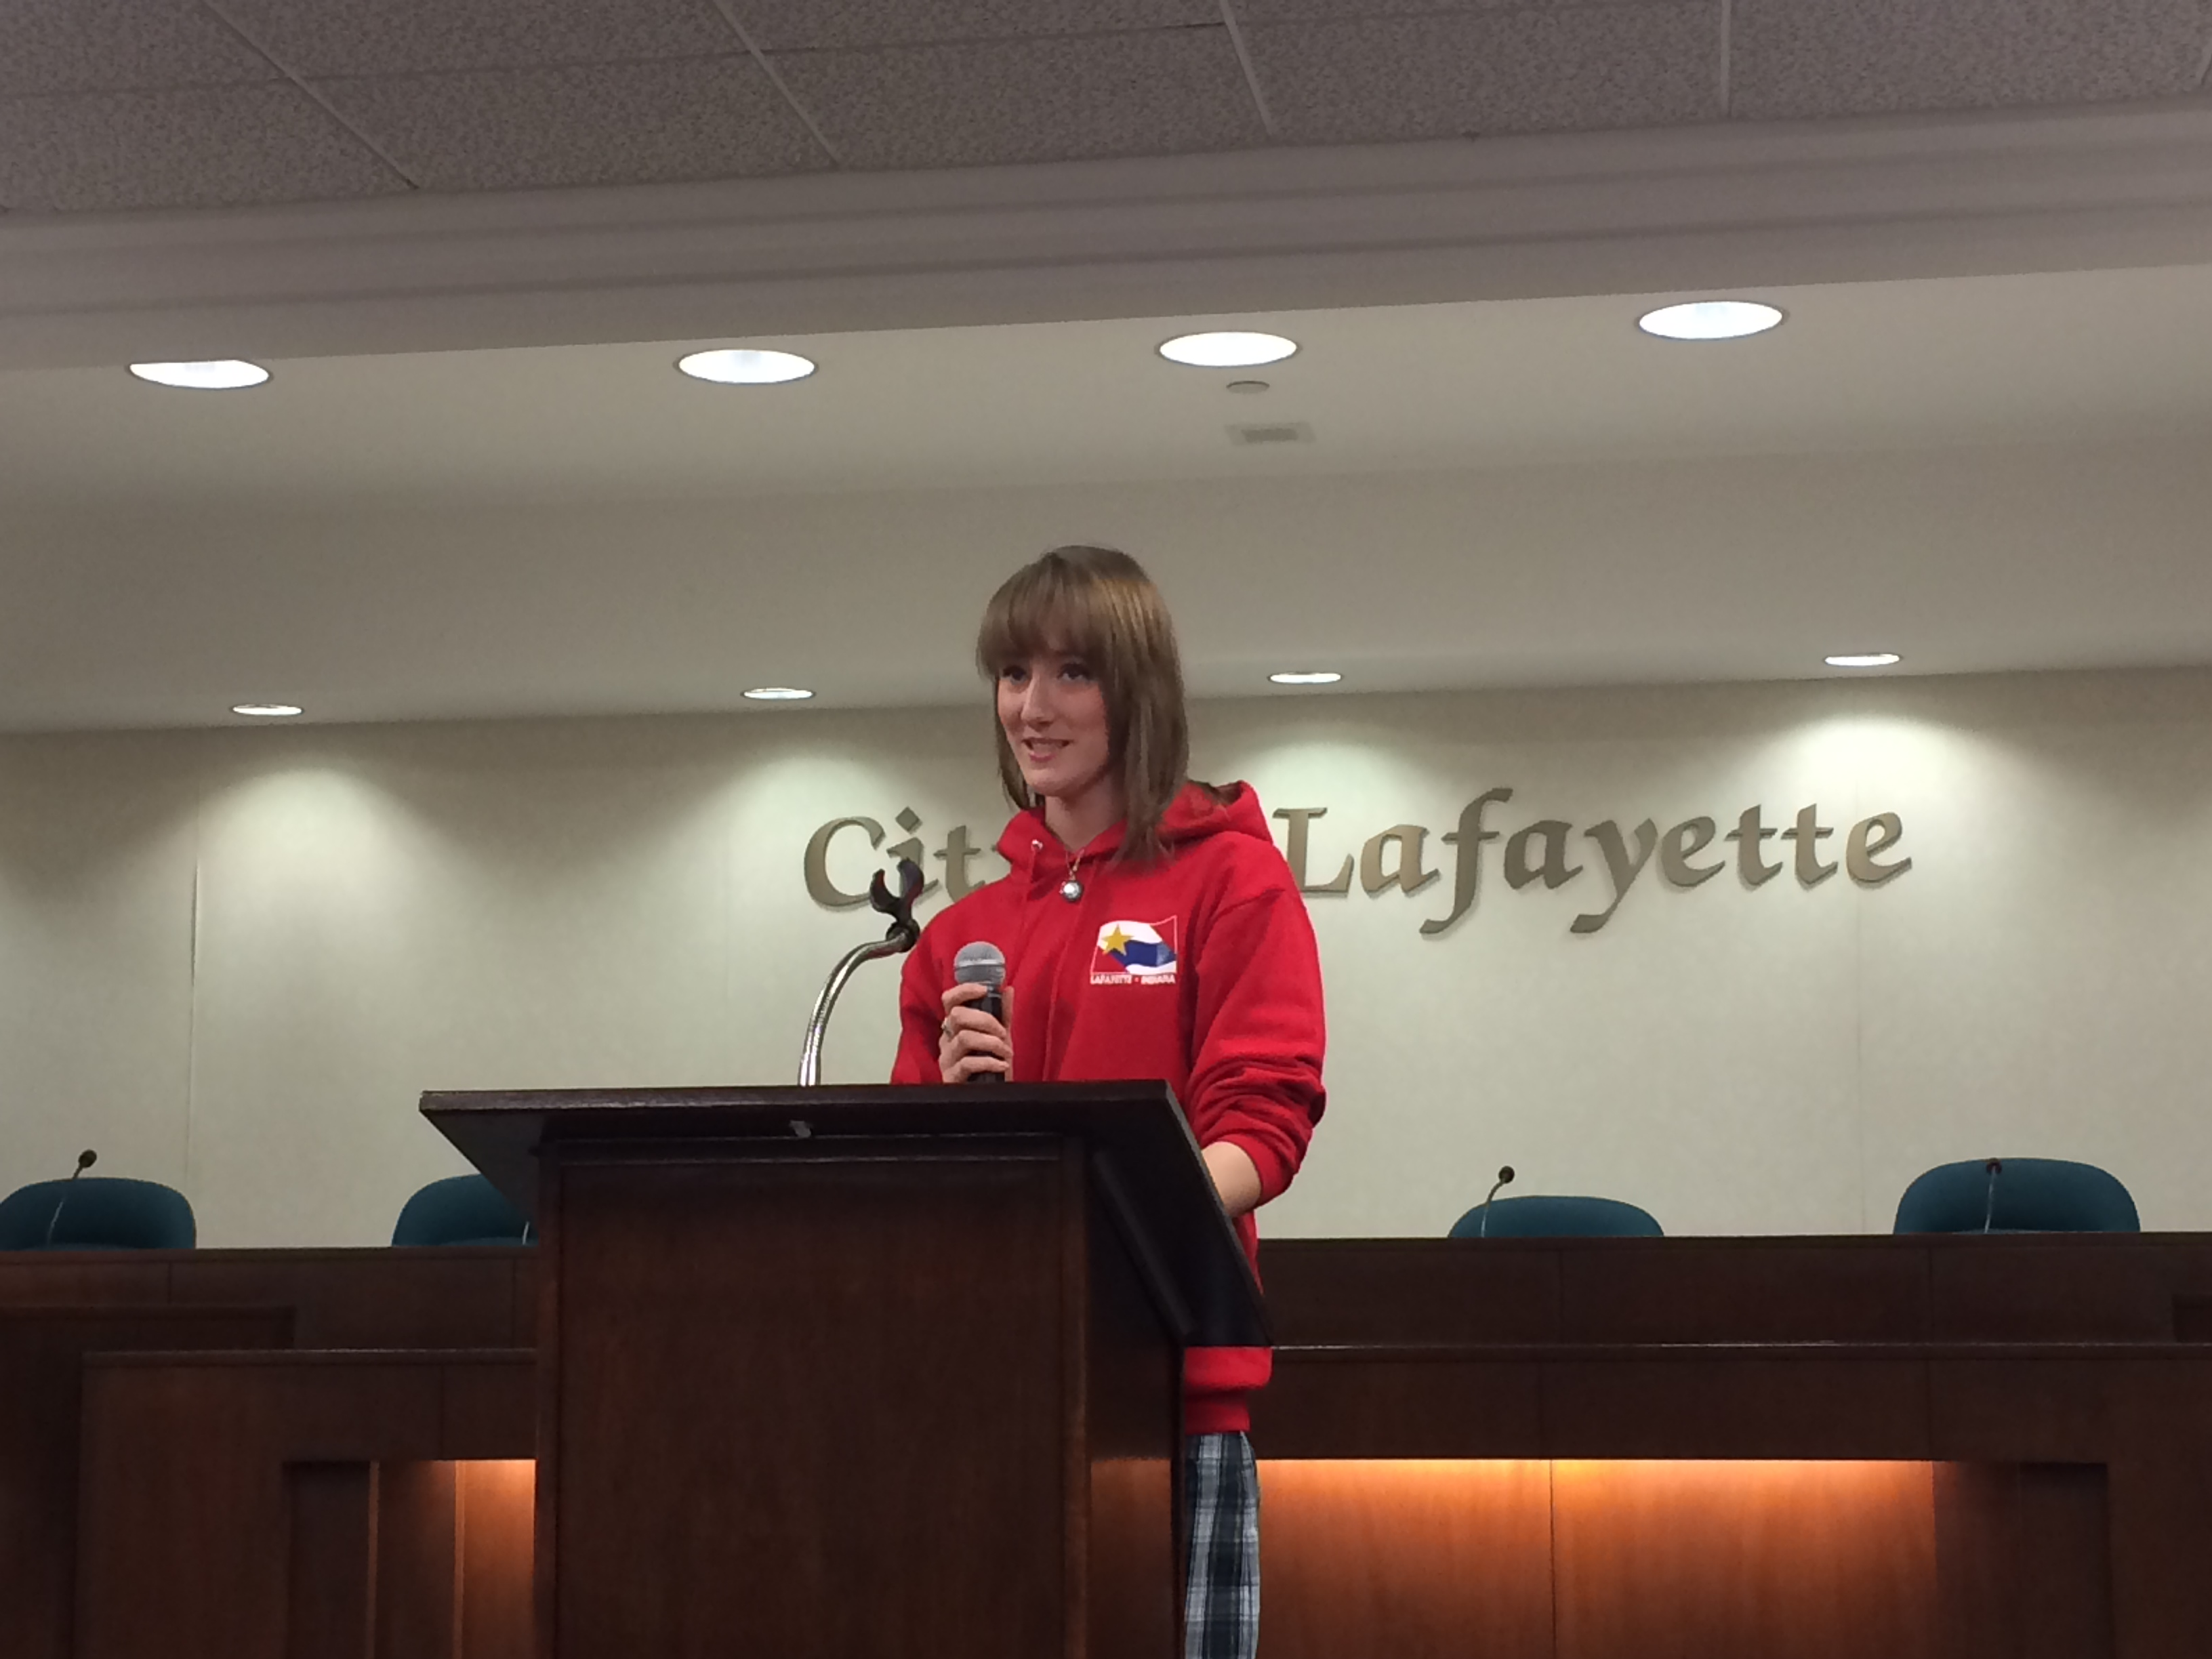 A teen girl in a red sweatshirt speaking at a podium